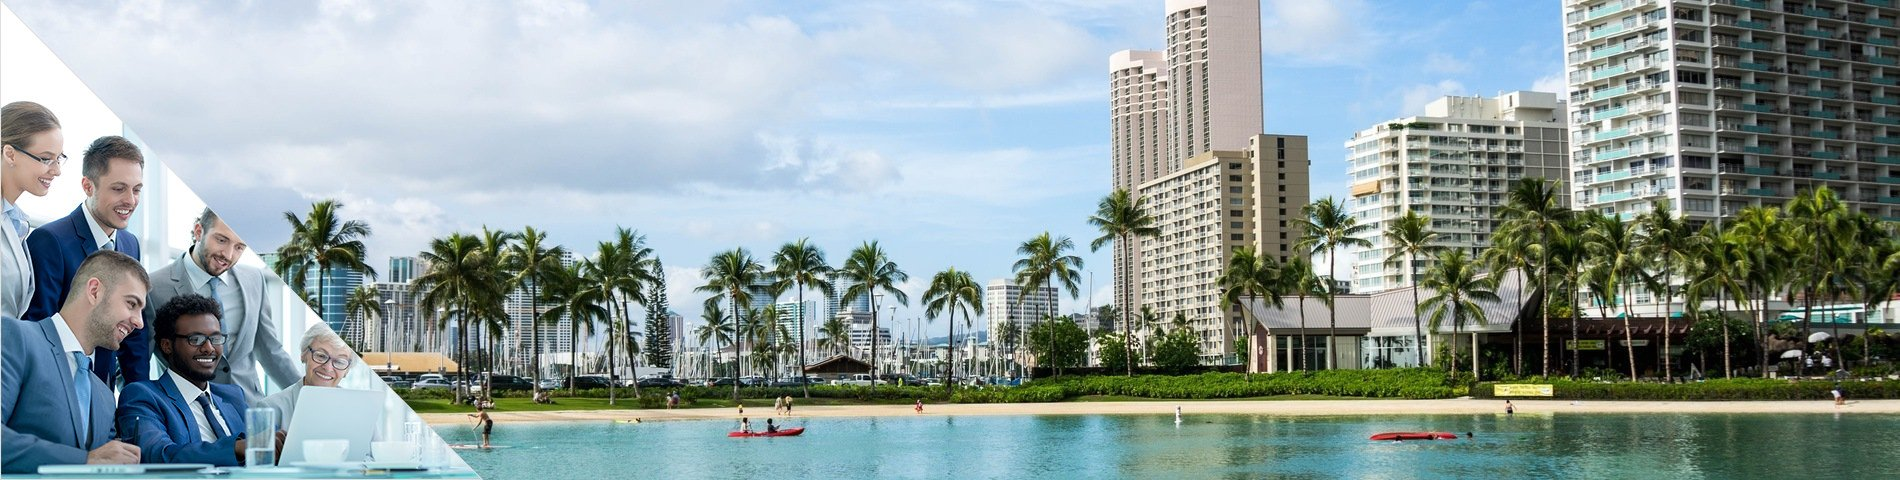 Honolulu - Business Gruppe